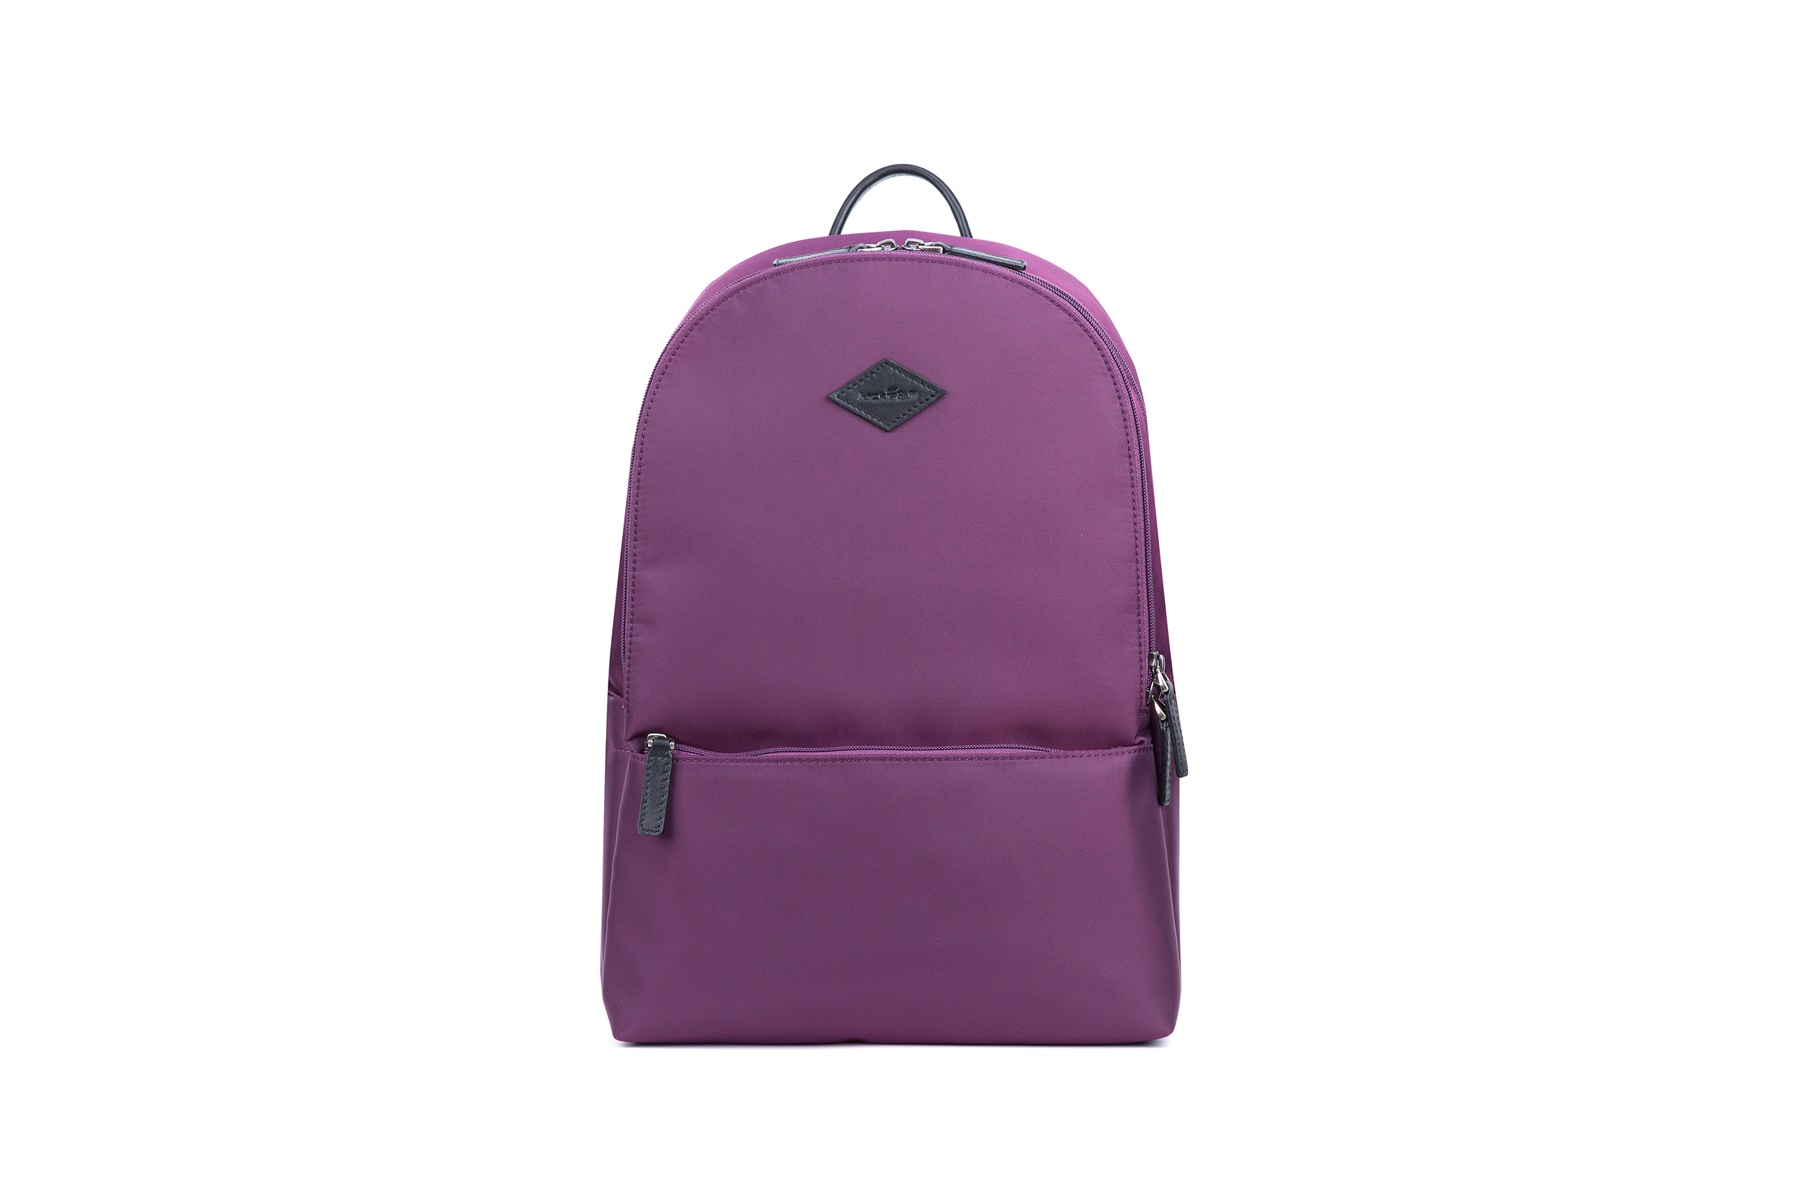 GF bags-Professional Stylish Backpacks Big Backpack Bags Manufacture-4